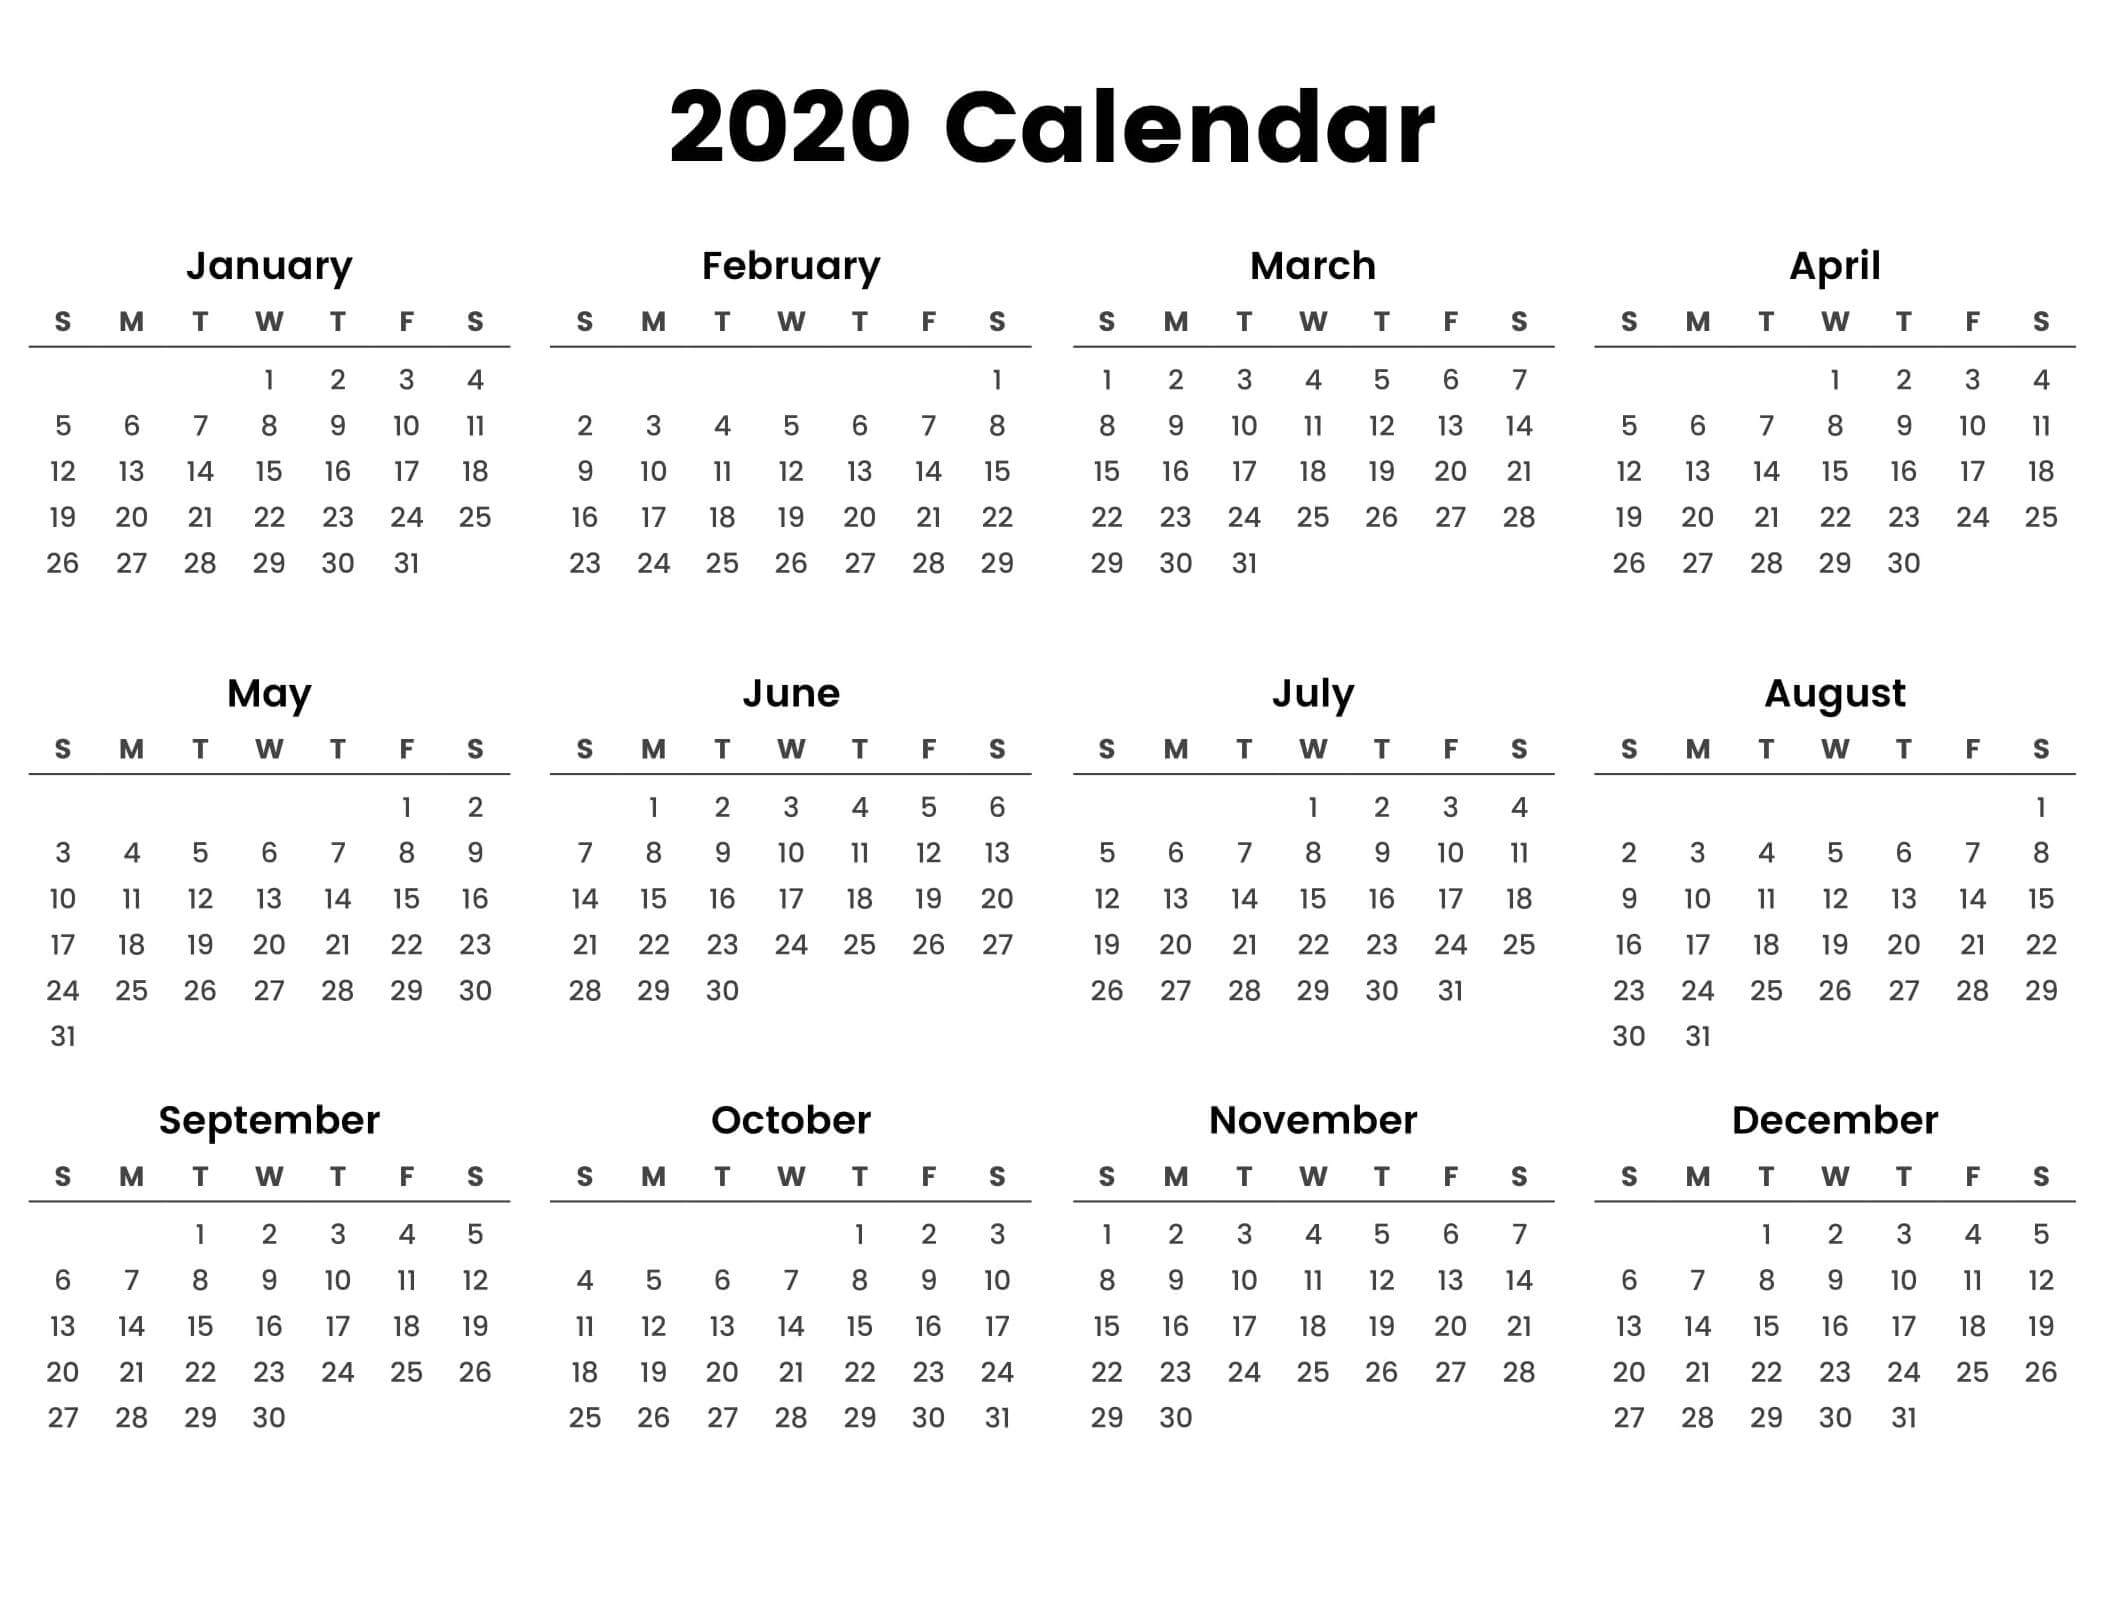 Large Yearly Calendar 2020 With Notes Pdf - Set Your Plan pertaining to 2020 Whole Year At A Glance